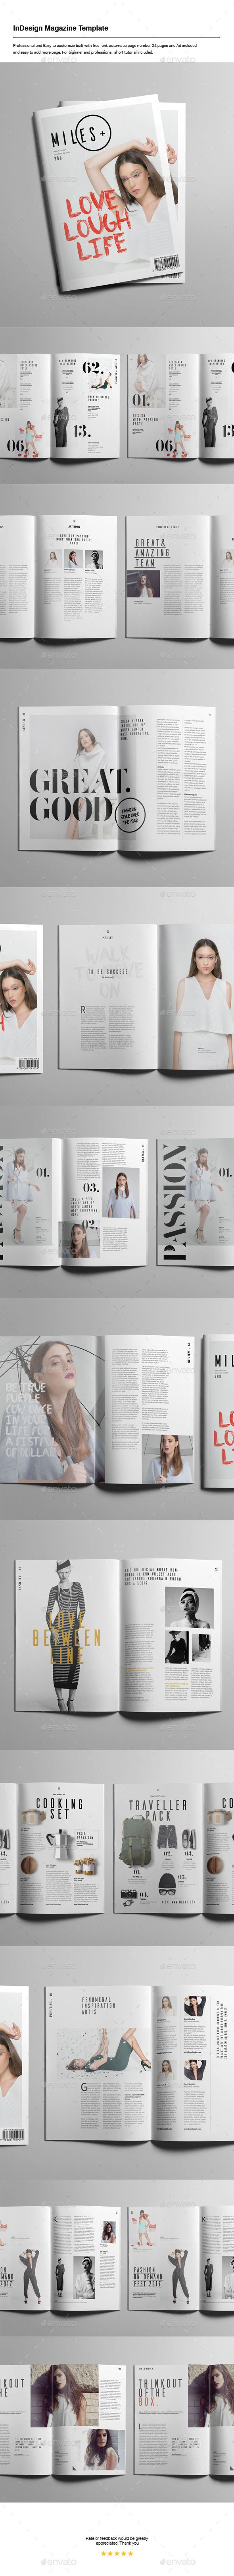 Magazine Template InDesign INDD #design Download: http://graphicriver.net/item/indesign-magazine-template/14312651?ref=ksioks